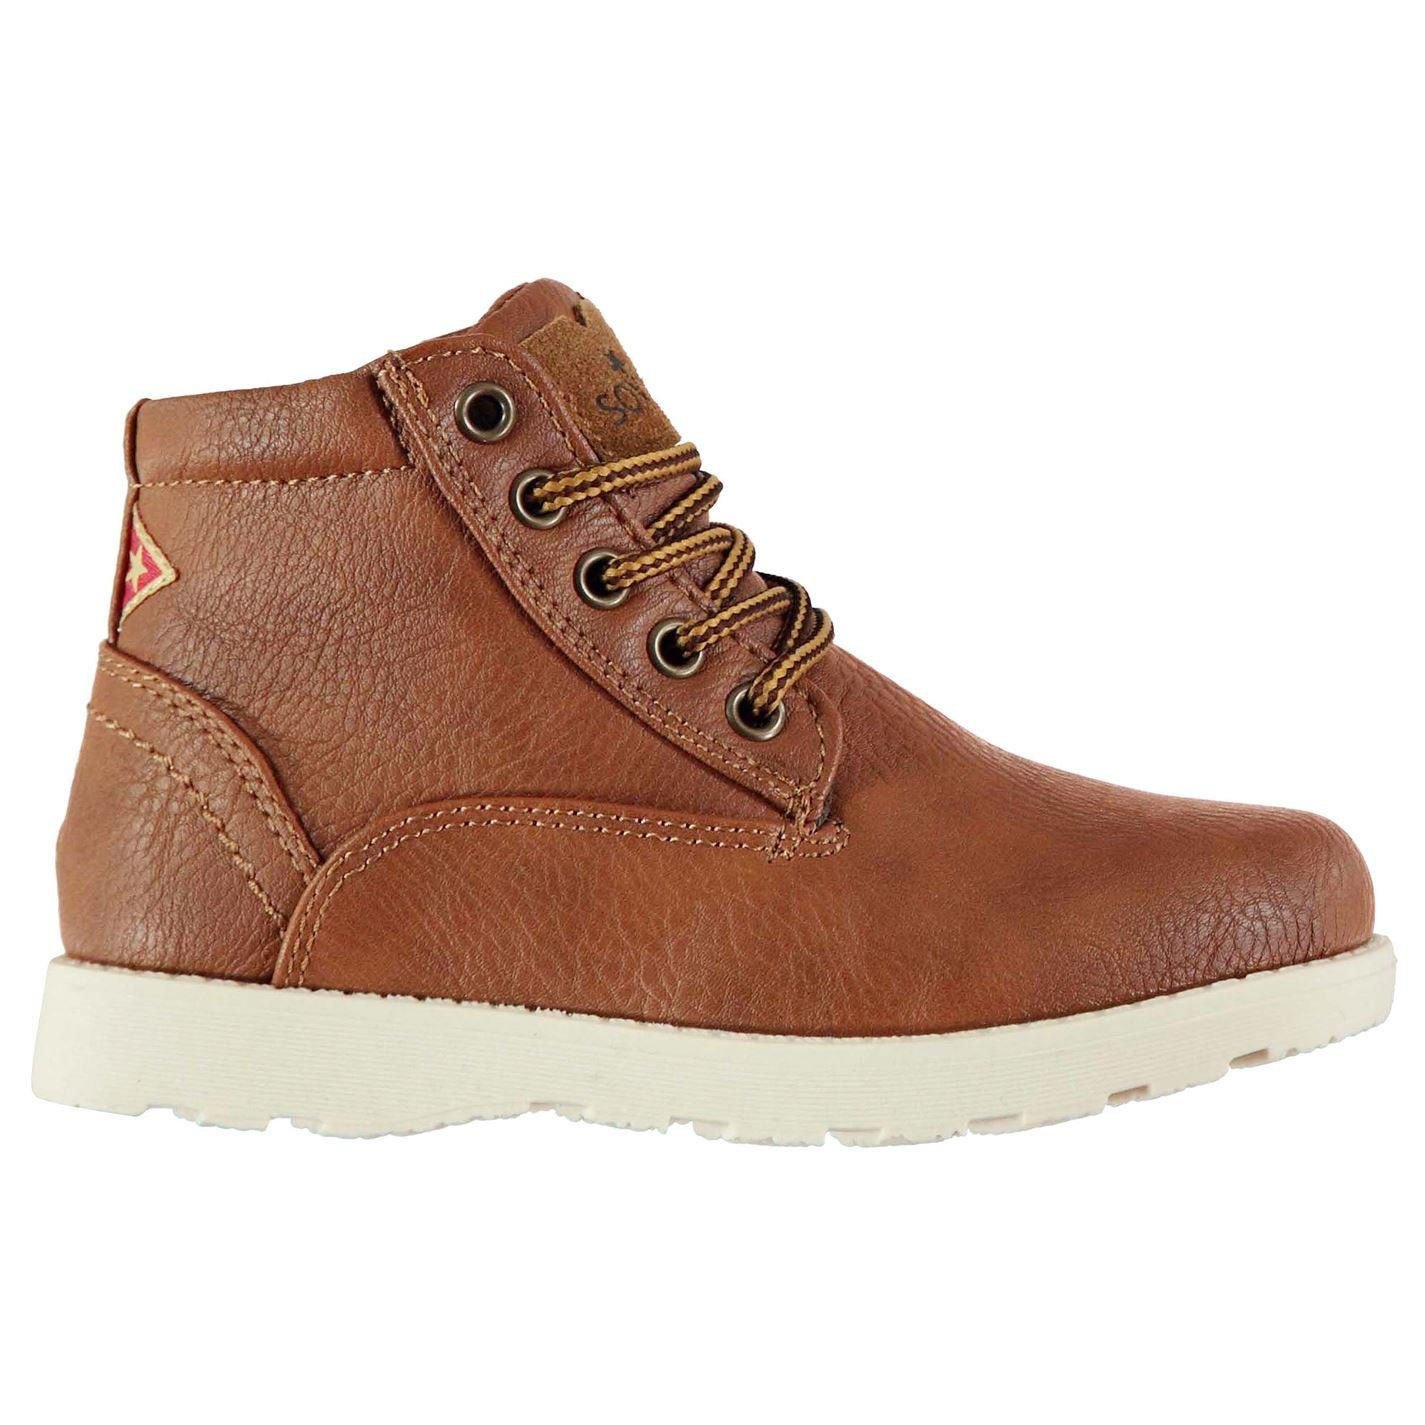 Soviet Boys Remix Ankle Boots Shoes Kids Lace Up Tonal Stitching Synthetic Tan UK C12 (31)